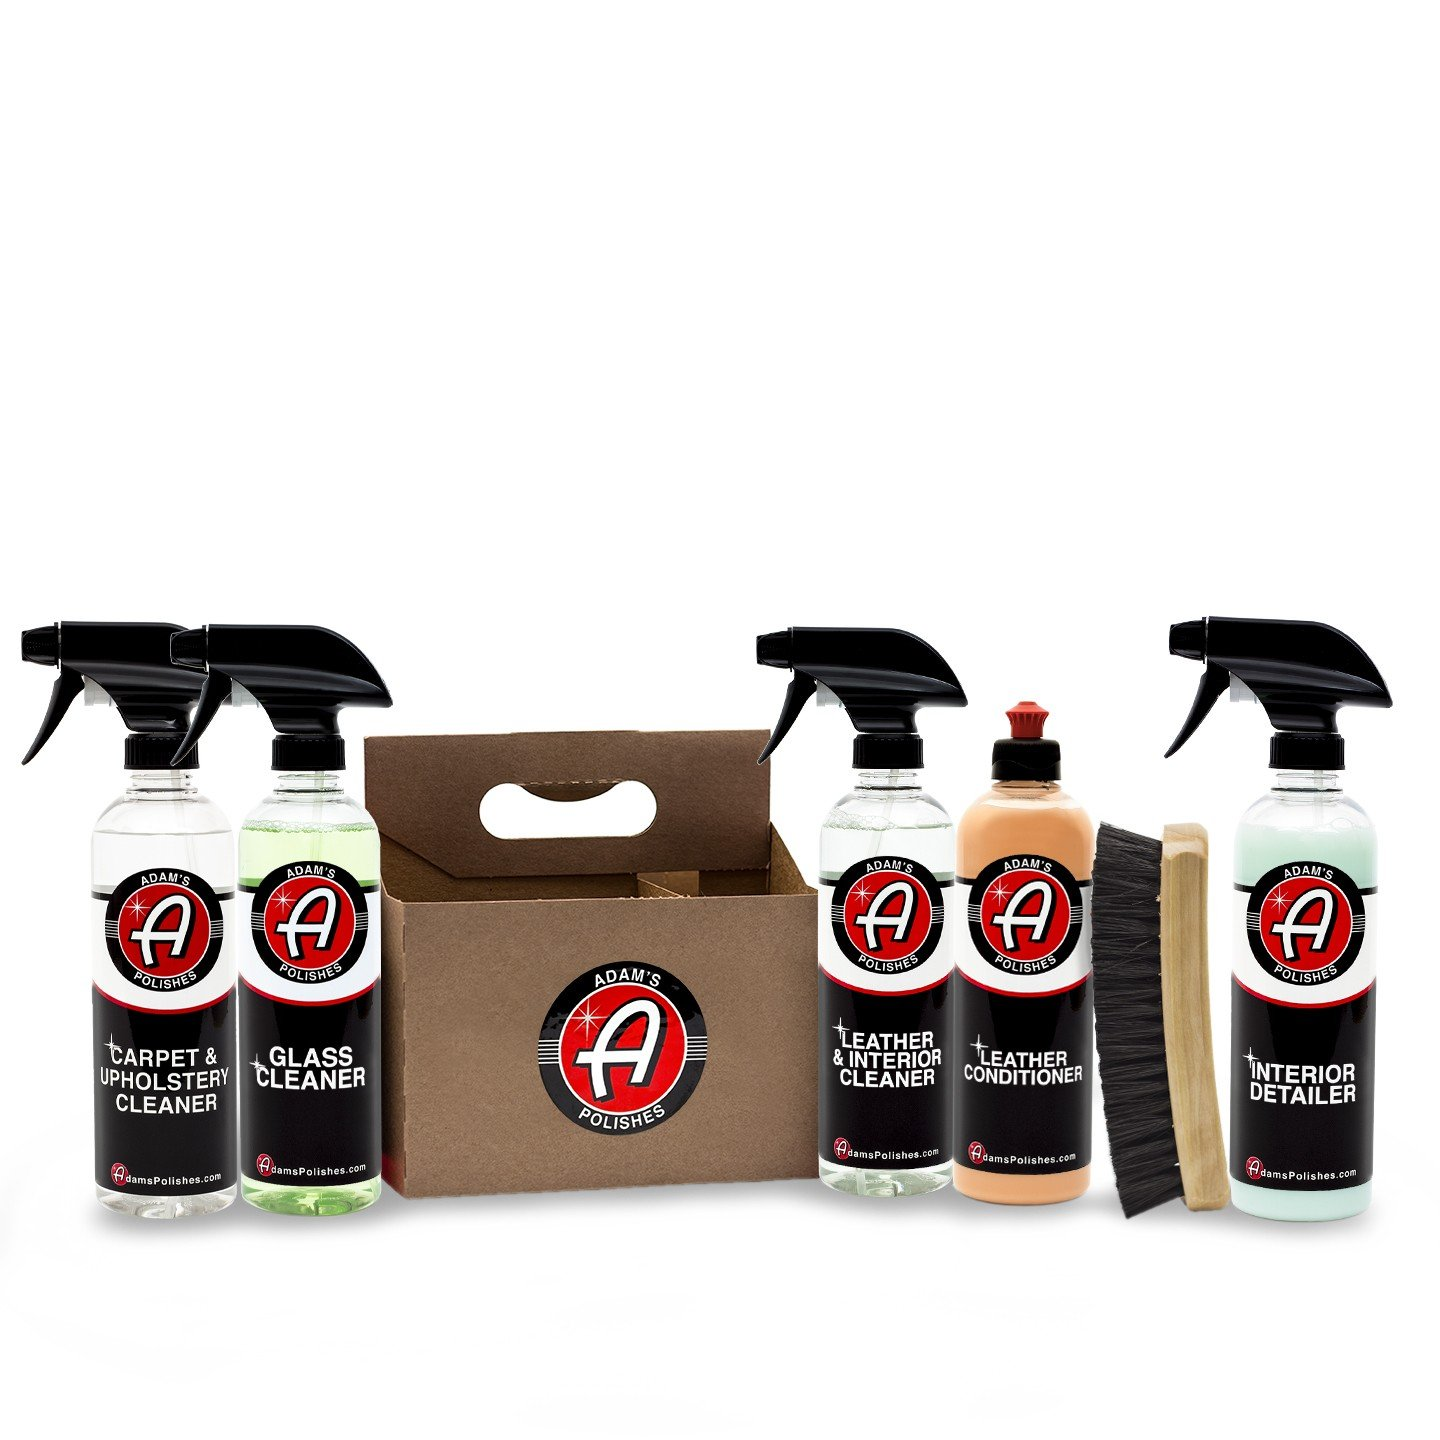 Adam's Elite 6 Pack - Our Top Selling Car Detailing Products Bundled Together - Clean, Shine & Protect Your Interior, Wheels, Tires & Paint (Interior)